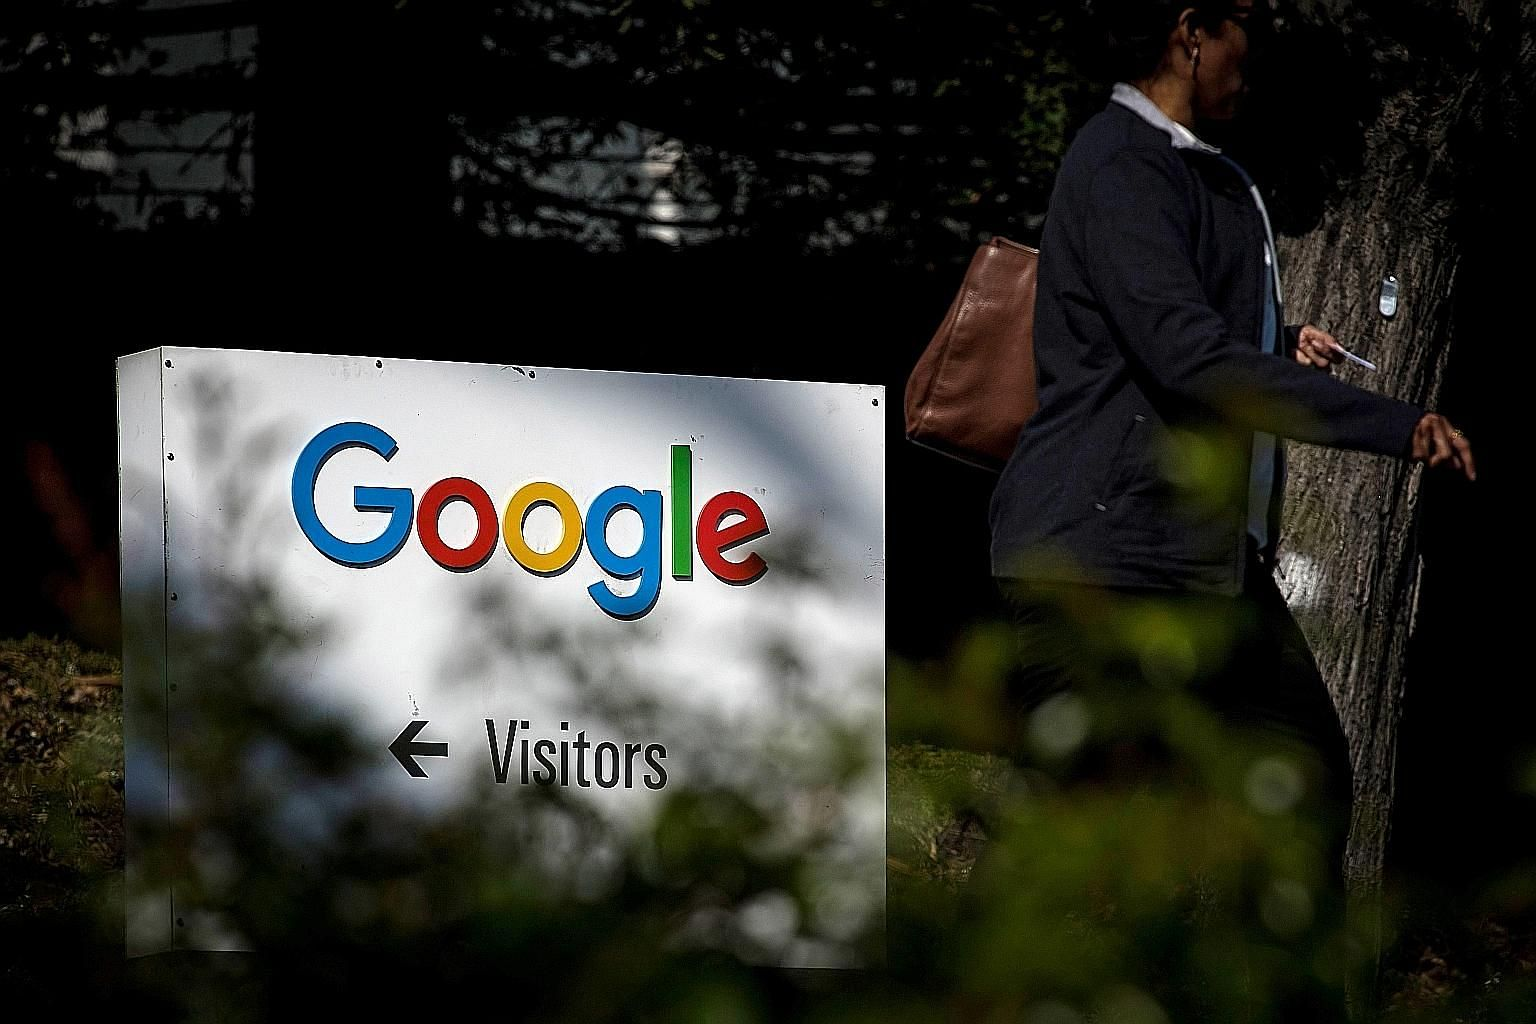 Internet giant Google last year launched the Store Sales Measurement service where it can match the online ad browsing activities of its users who did not opt out of ad tracking to purchases linked to Mastercard in physical stores